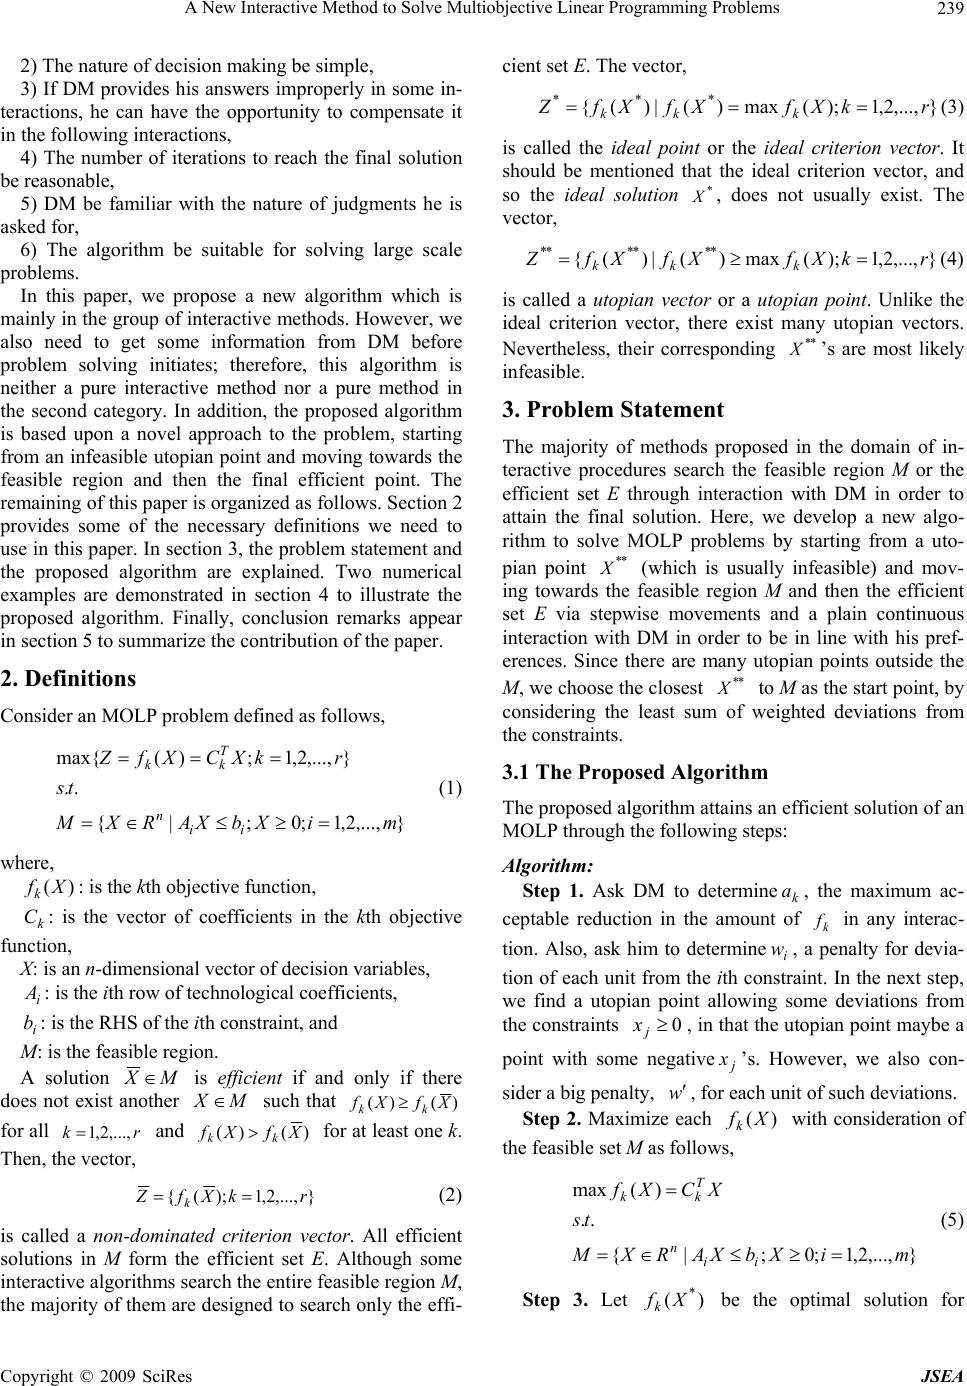 Solve linear programming problems online